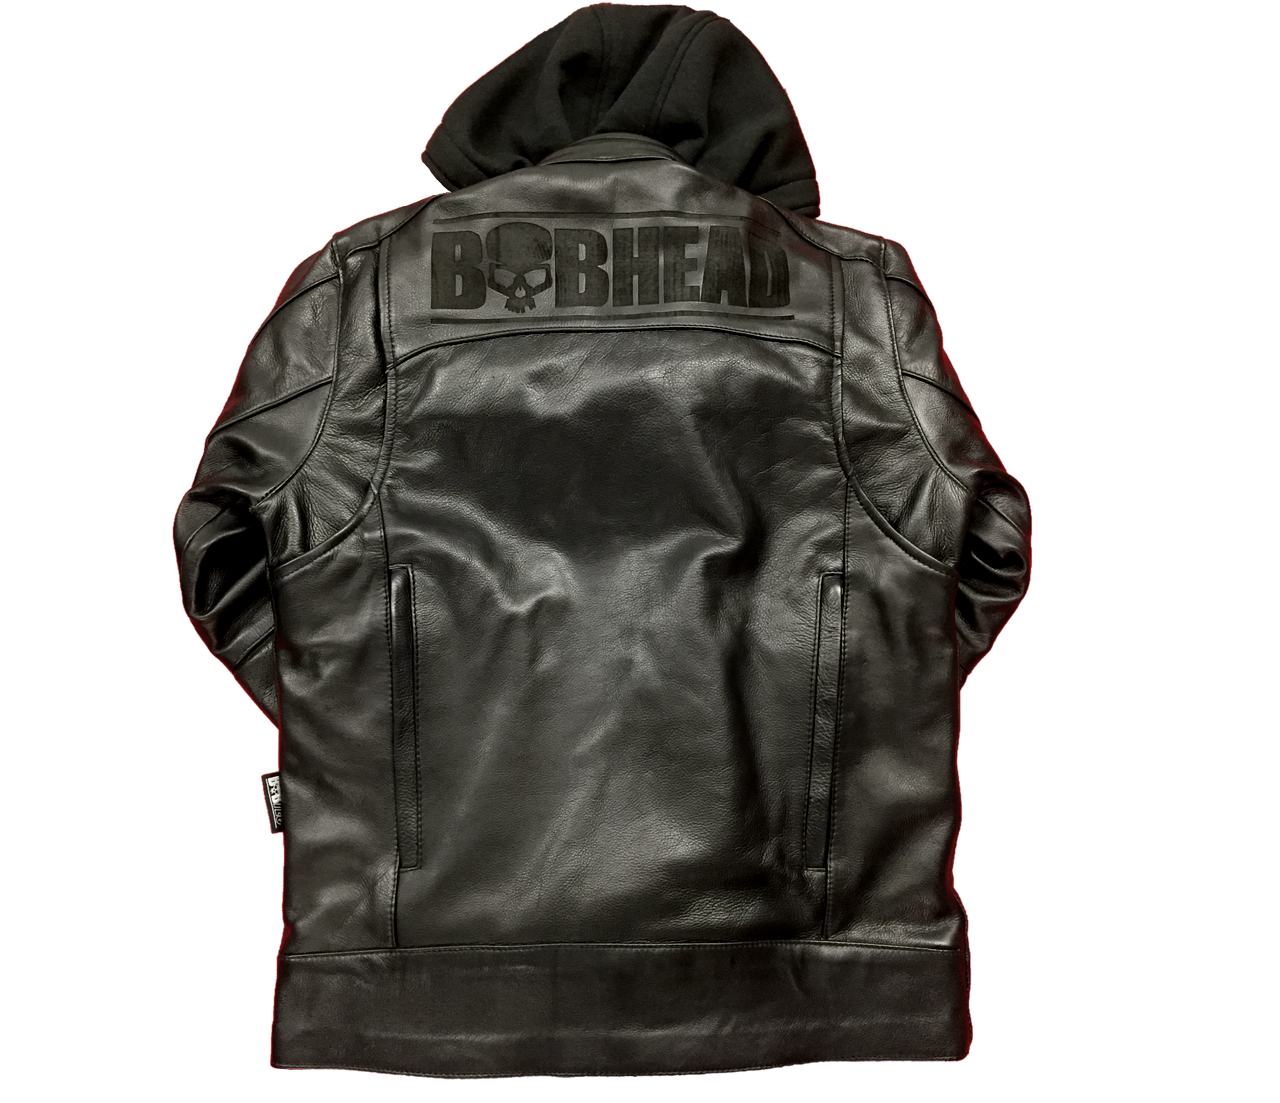 bobhead-Leather-Jacket9